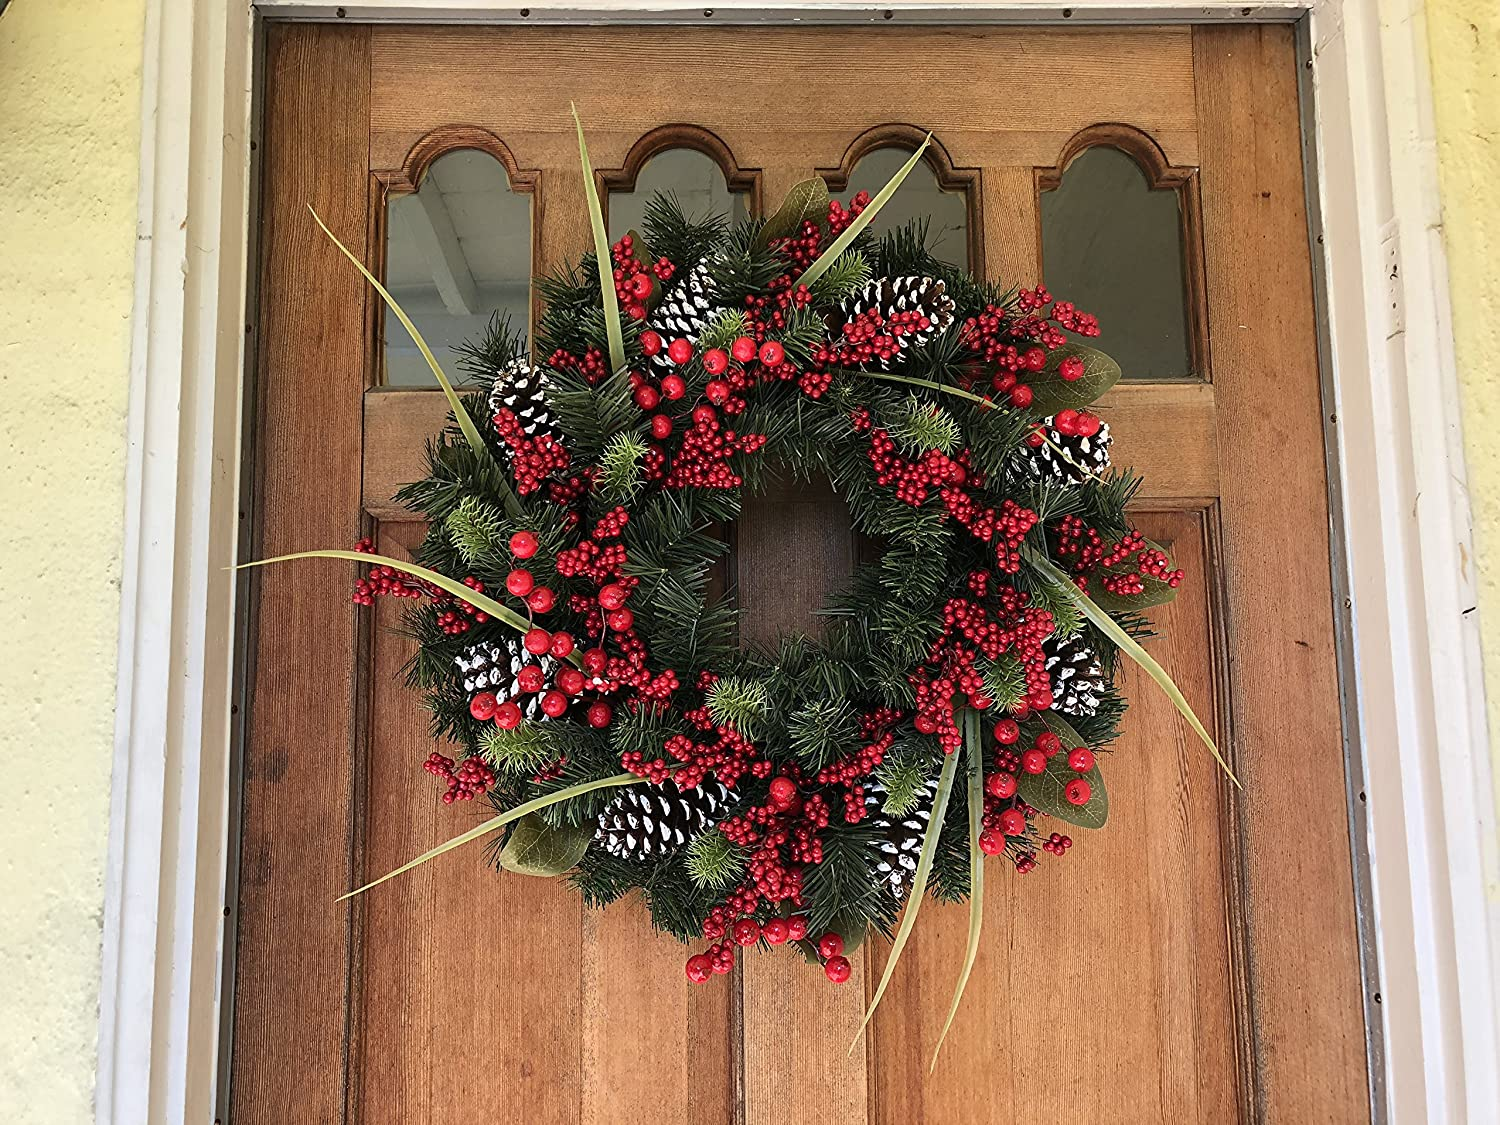 Tunbridge Winter Berry Wreath 22 Inch - Elegant and Vibrant Design Brighten Door Decor, Beautiful White Gift Box and Hanging Loop, Approved for Covered Outdoor Use The Wreath Depot